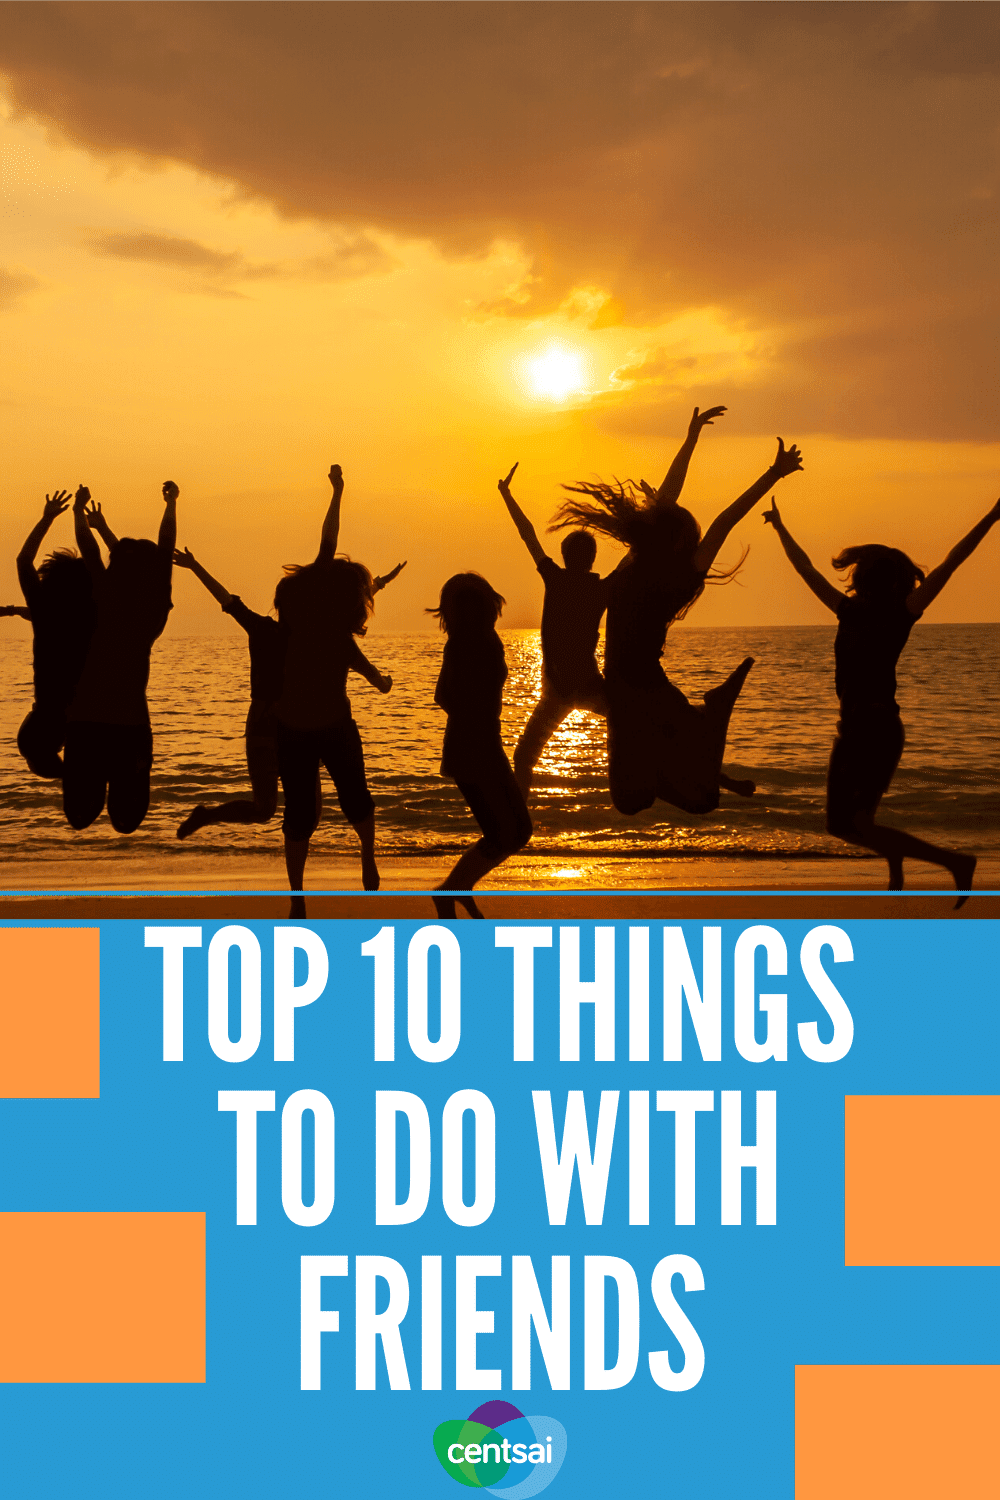 Top 10 Free Things To Do with Friends